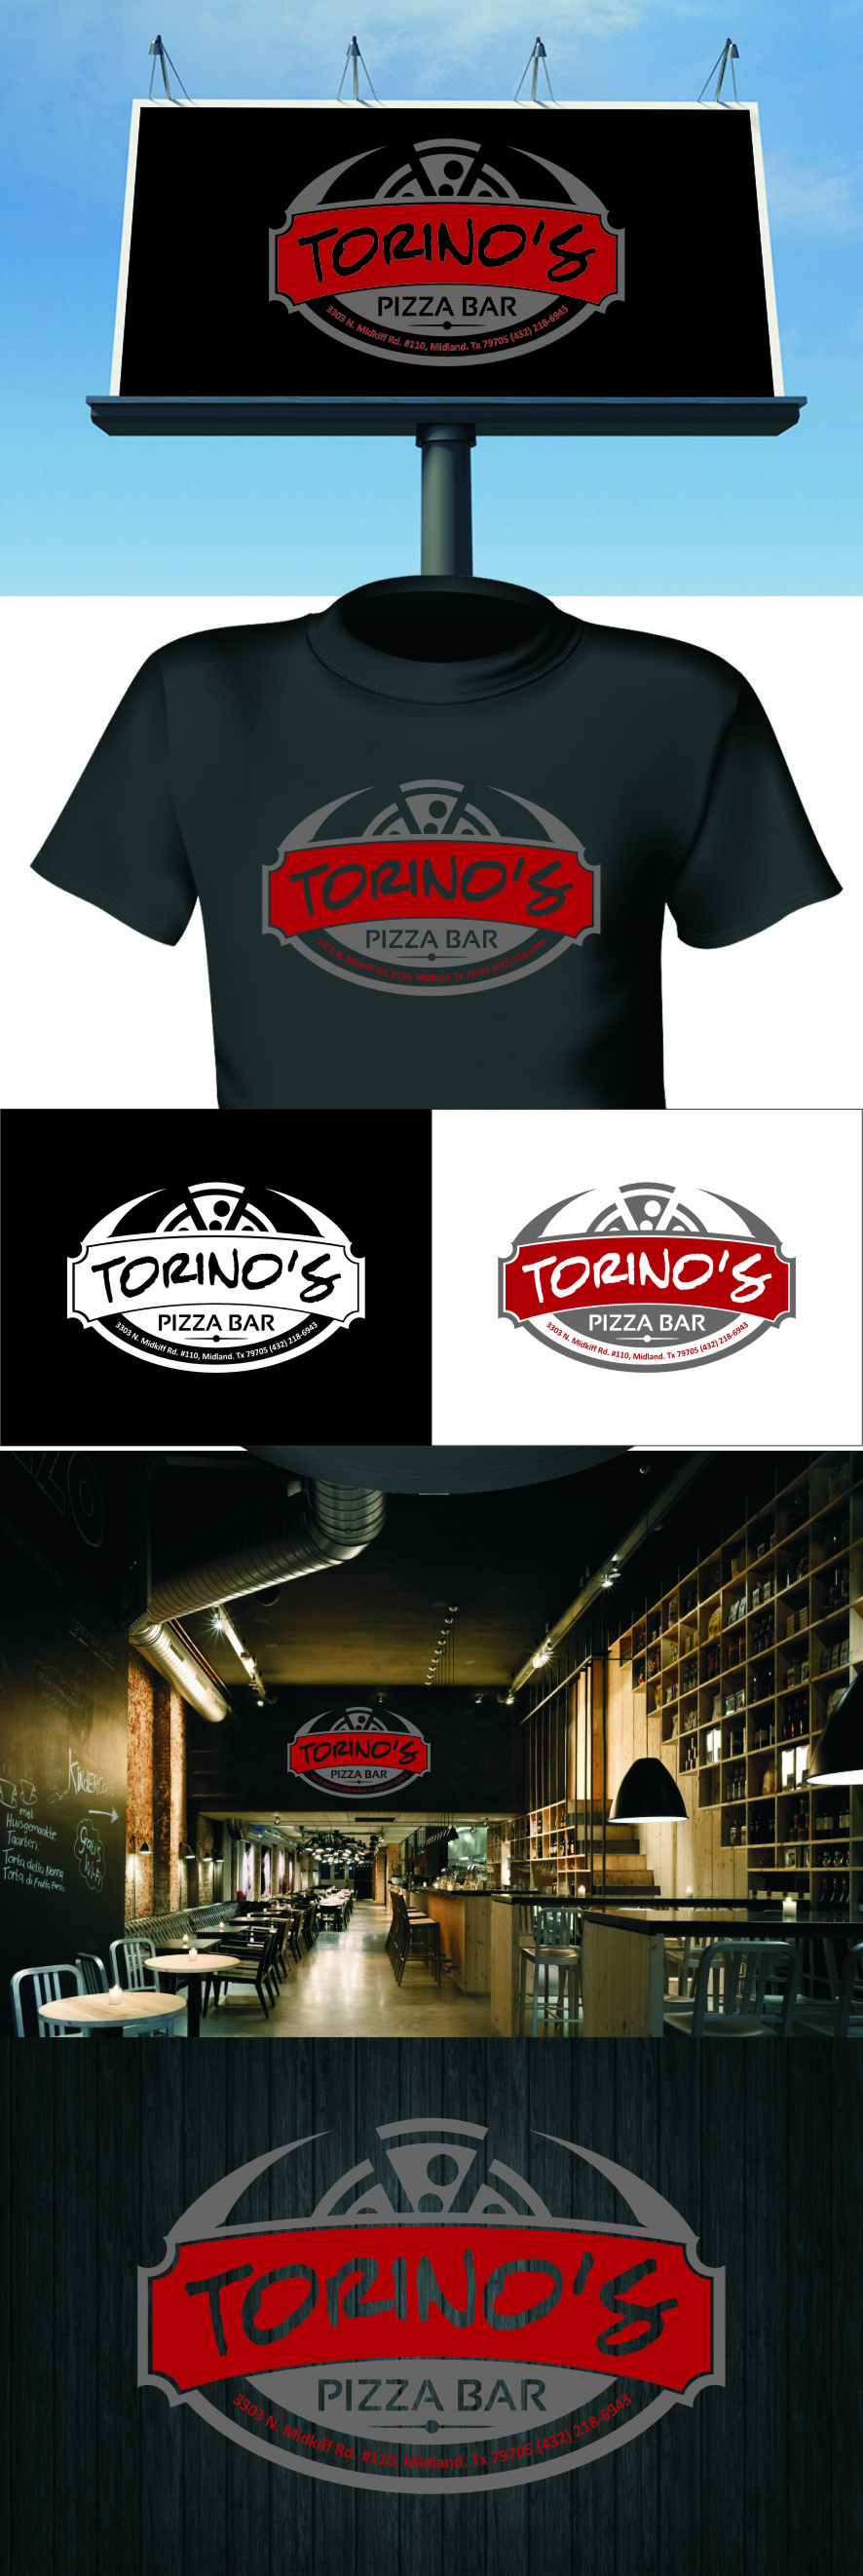 Custom Design by Ngepet_art - Entry No. 46 in the Custom Design Contest Torino's Pizza Bar Custom Design.